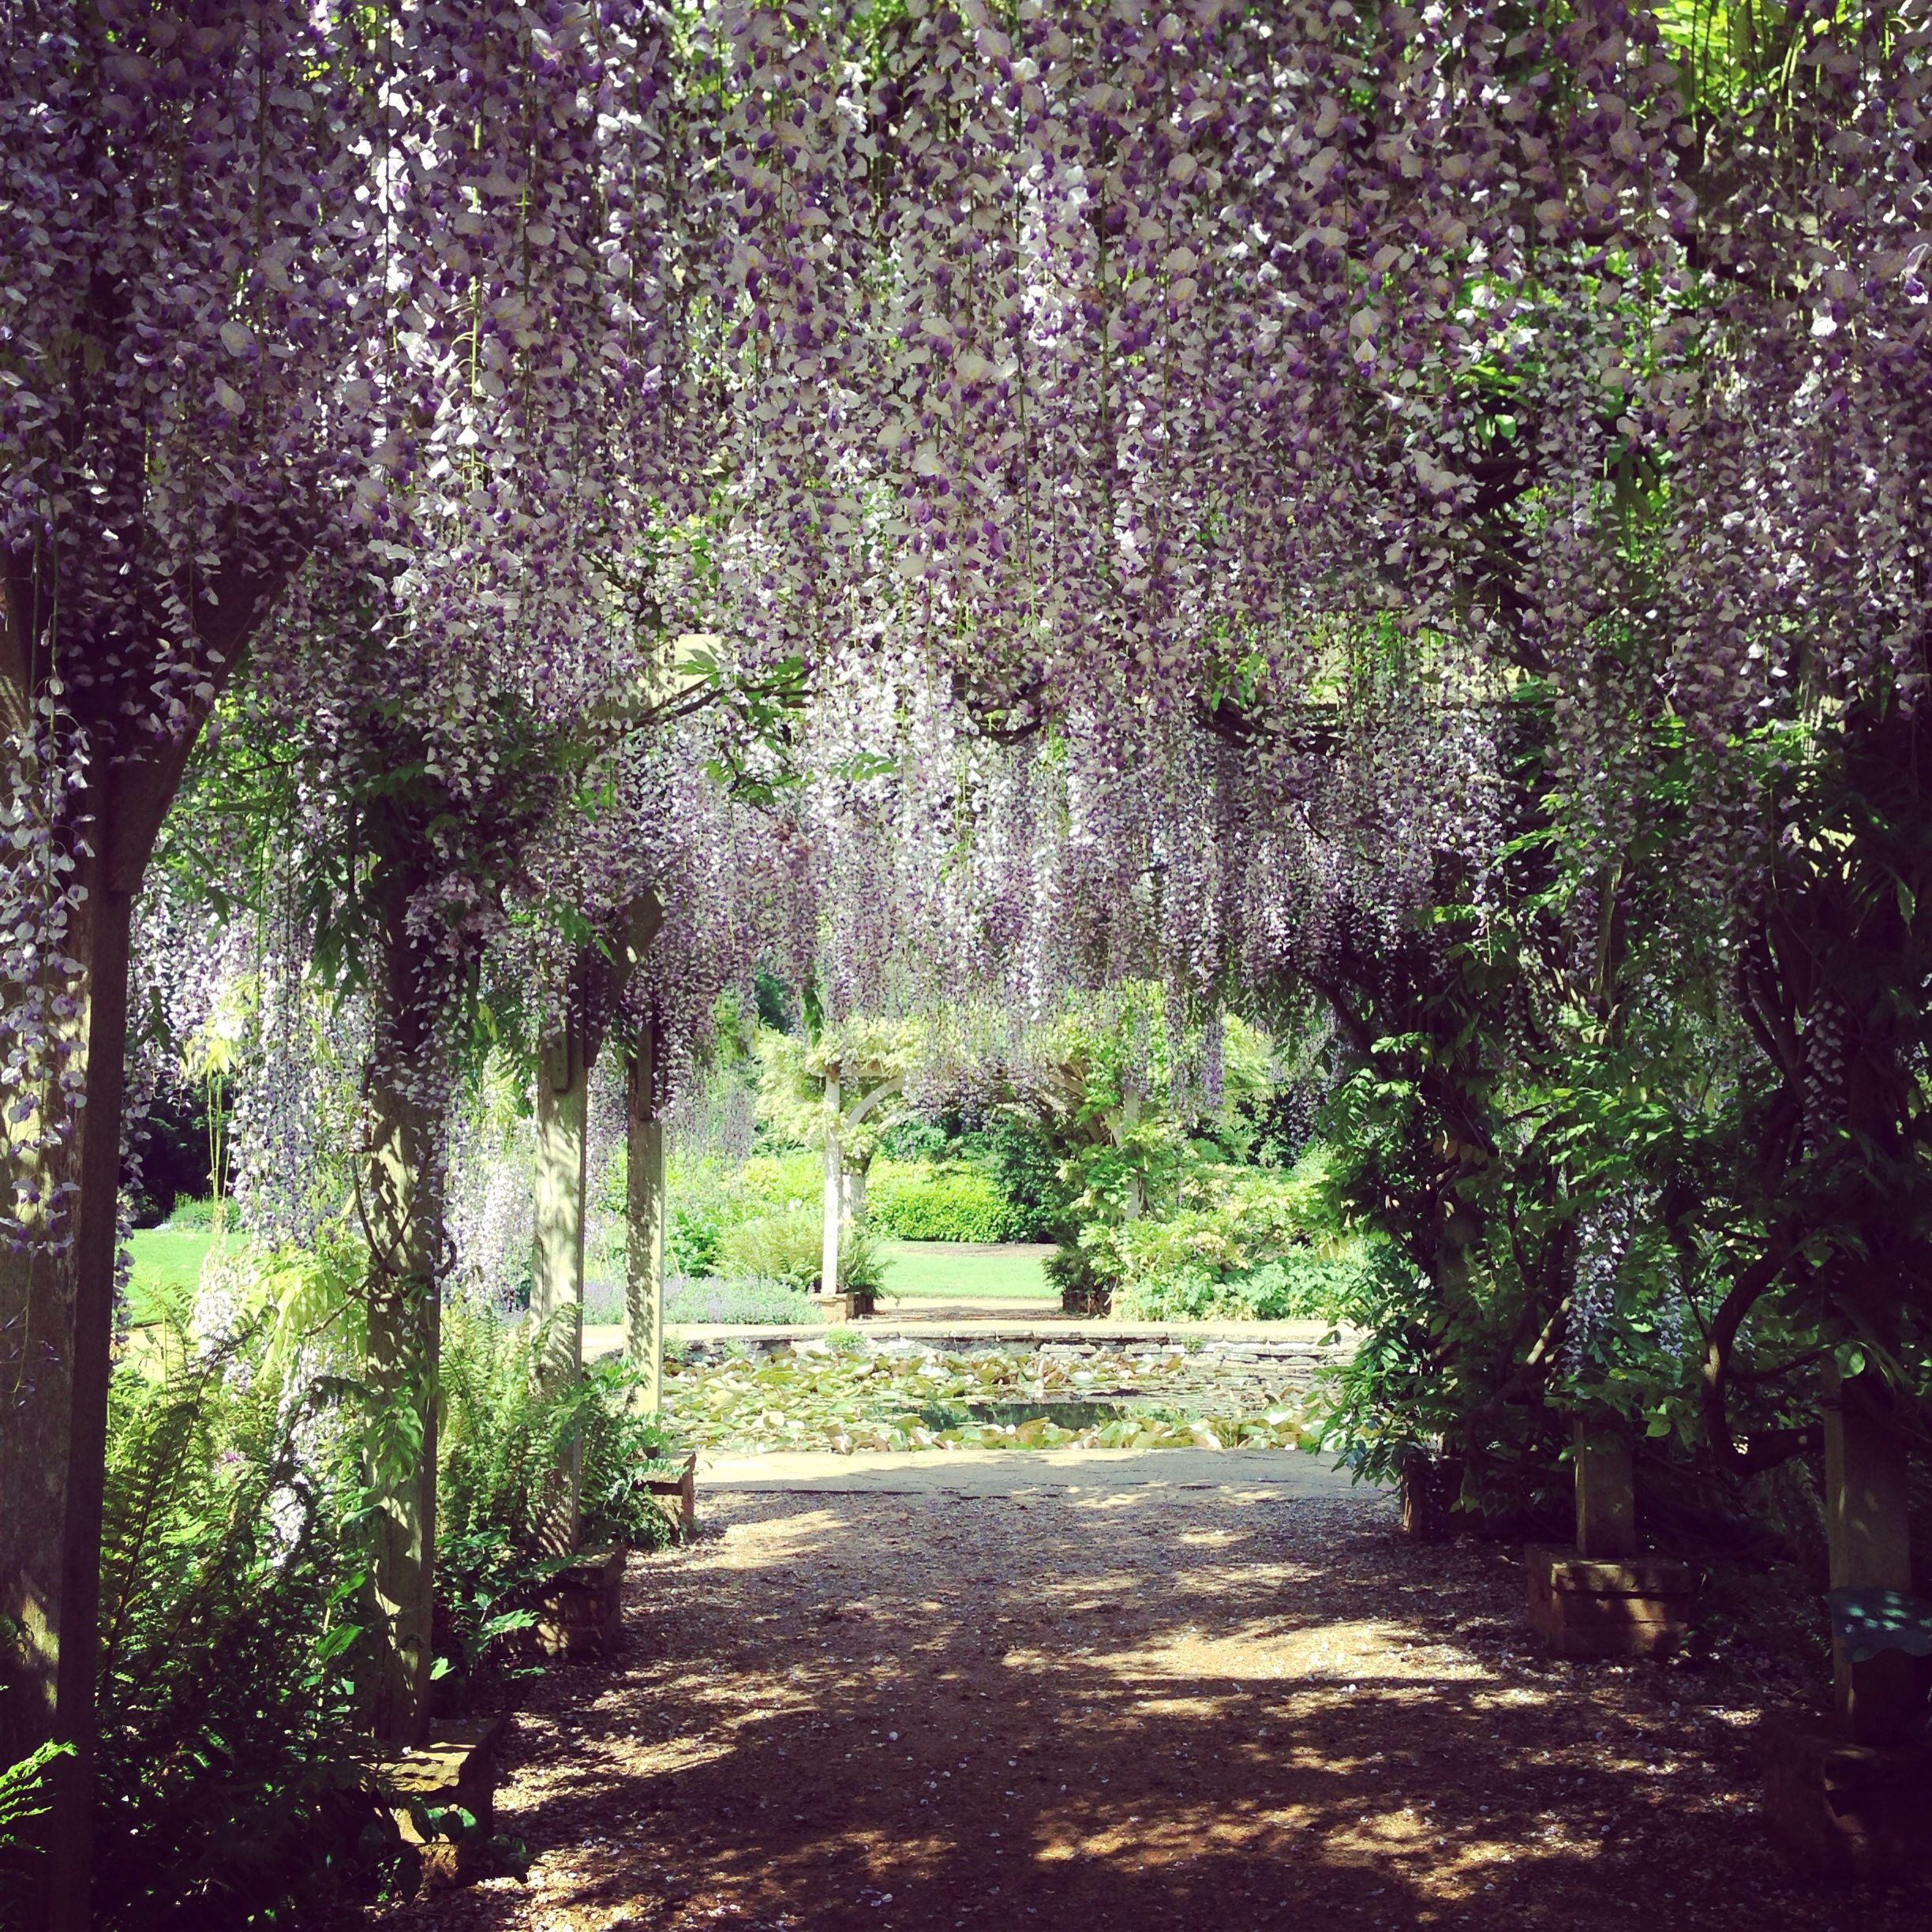 Wisteria at Hylands Park